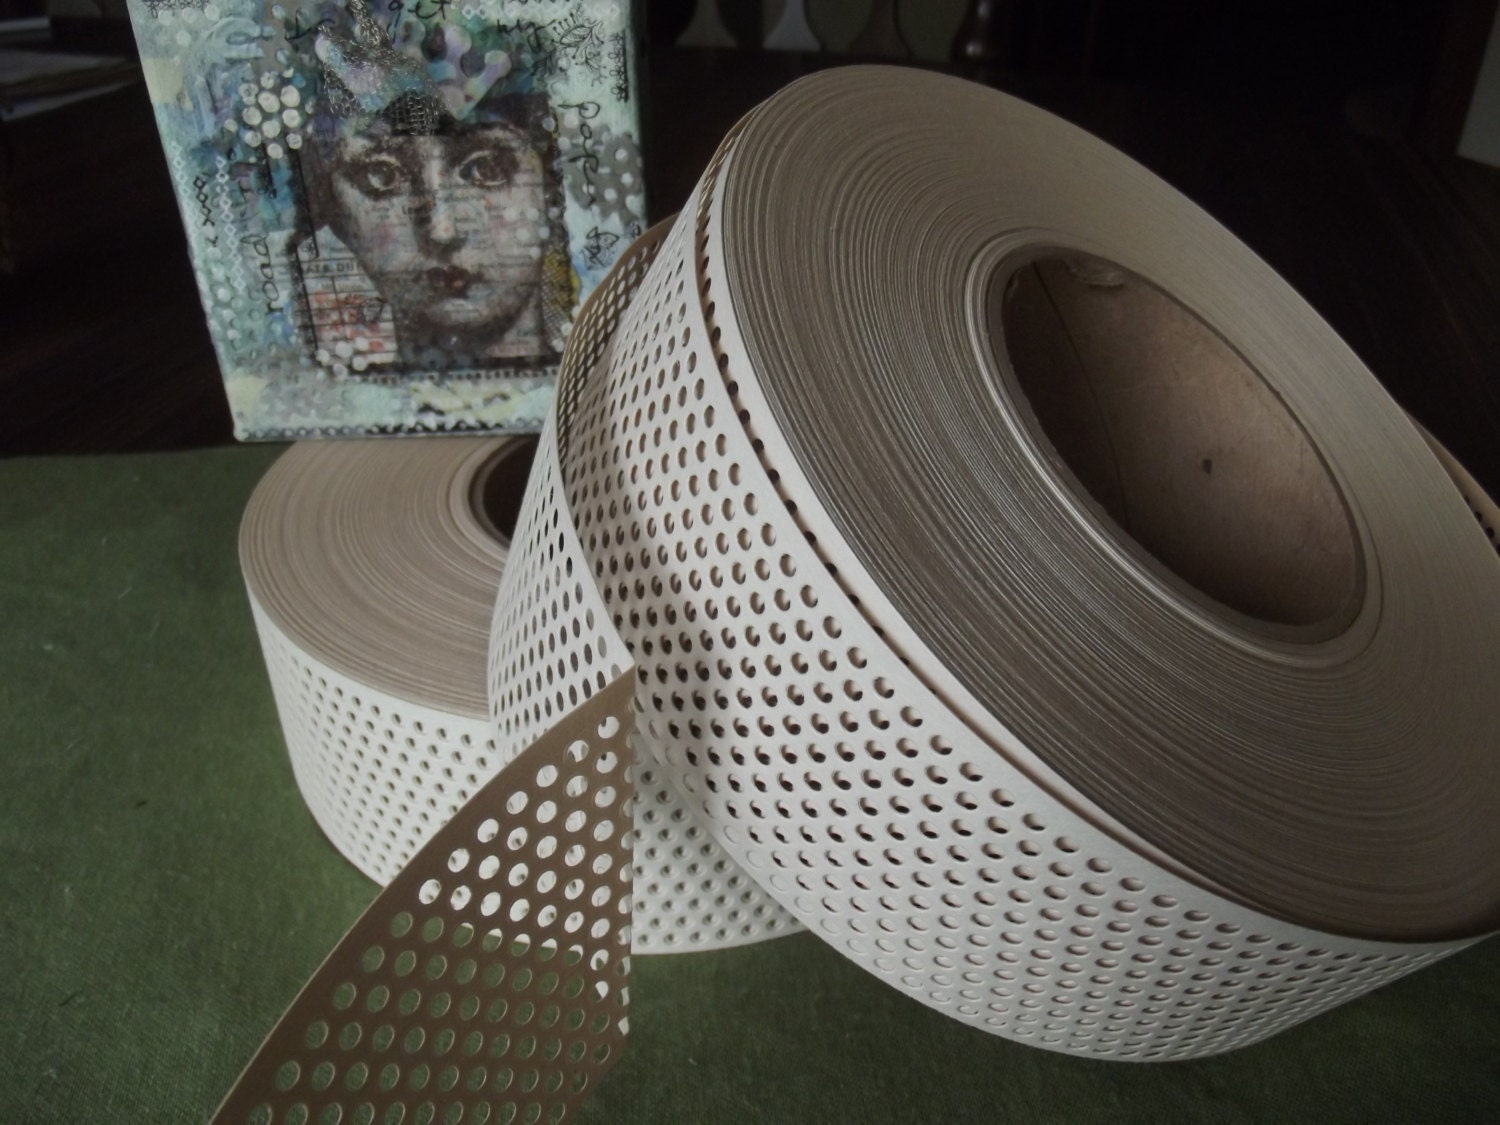 How Use Paper Drywall Tape : Mixed media joint tape self adhesive paper by